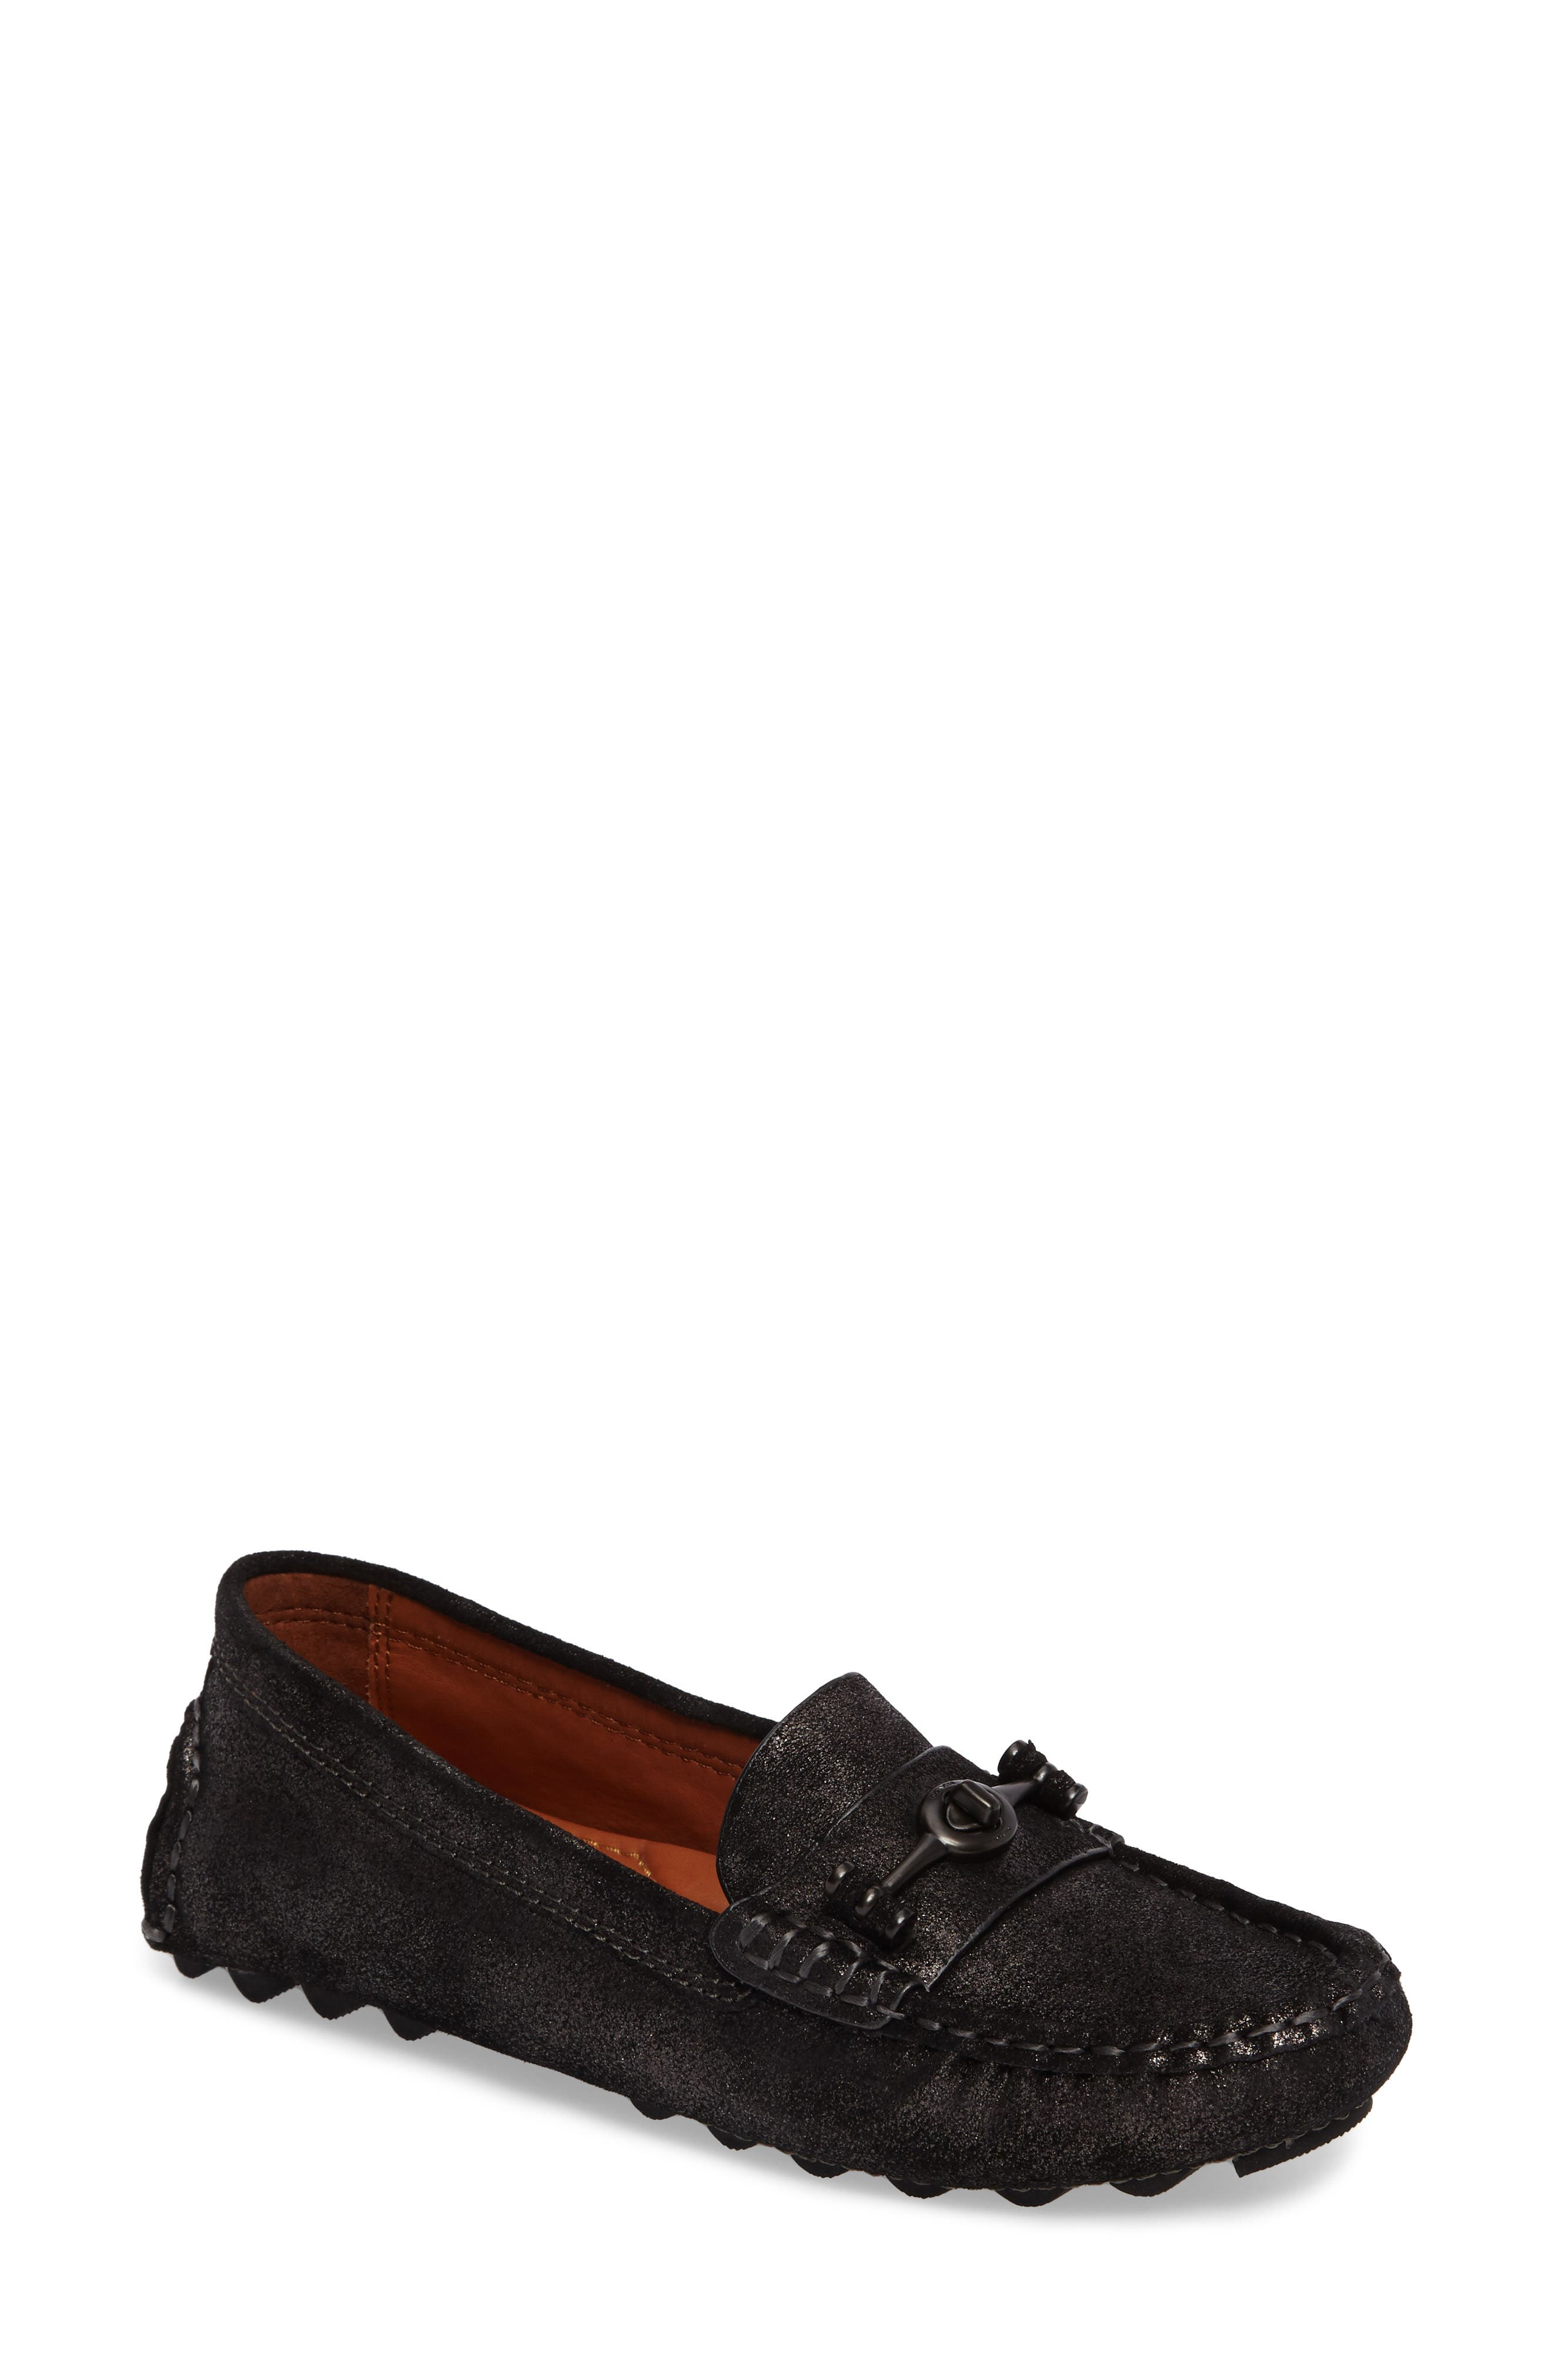 Crosby Driving Loafer,                             Main thumbnail 1, color,                             ANTHRACITE SUEDE